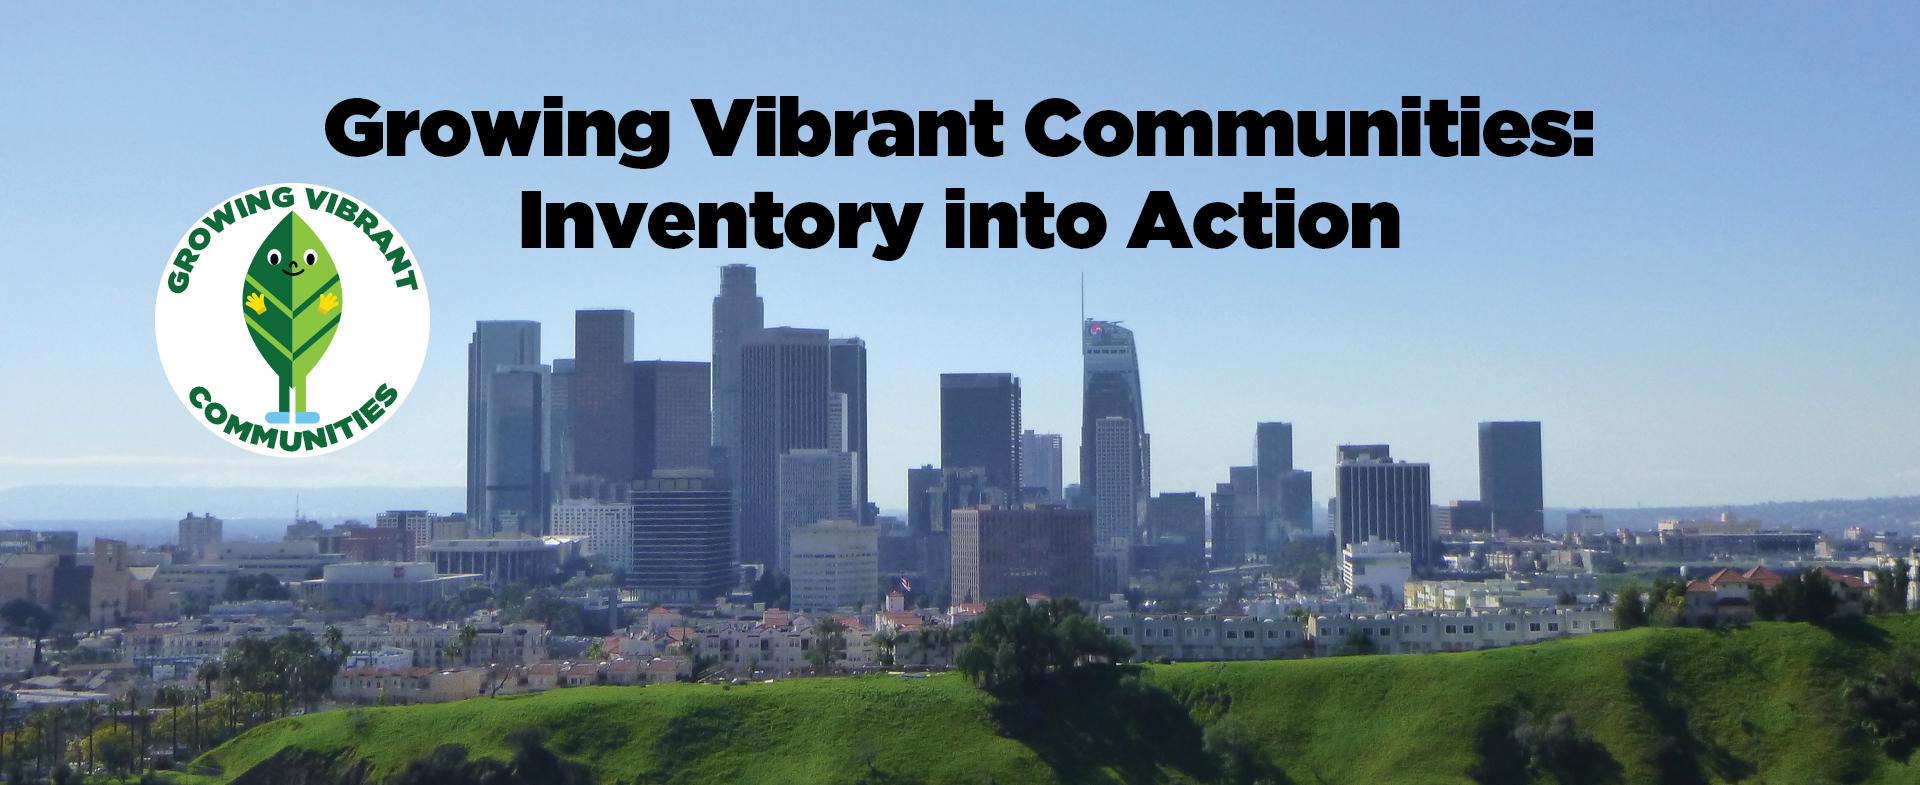 Growing Vibrant Communities